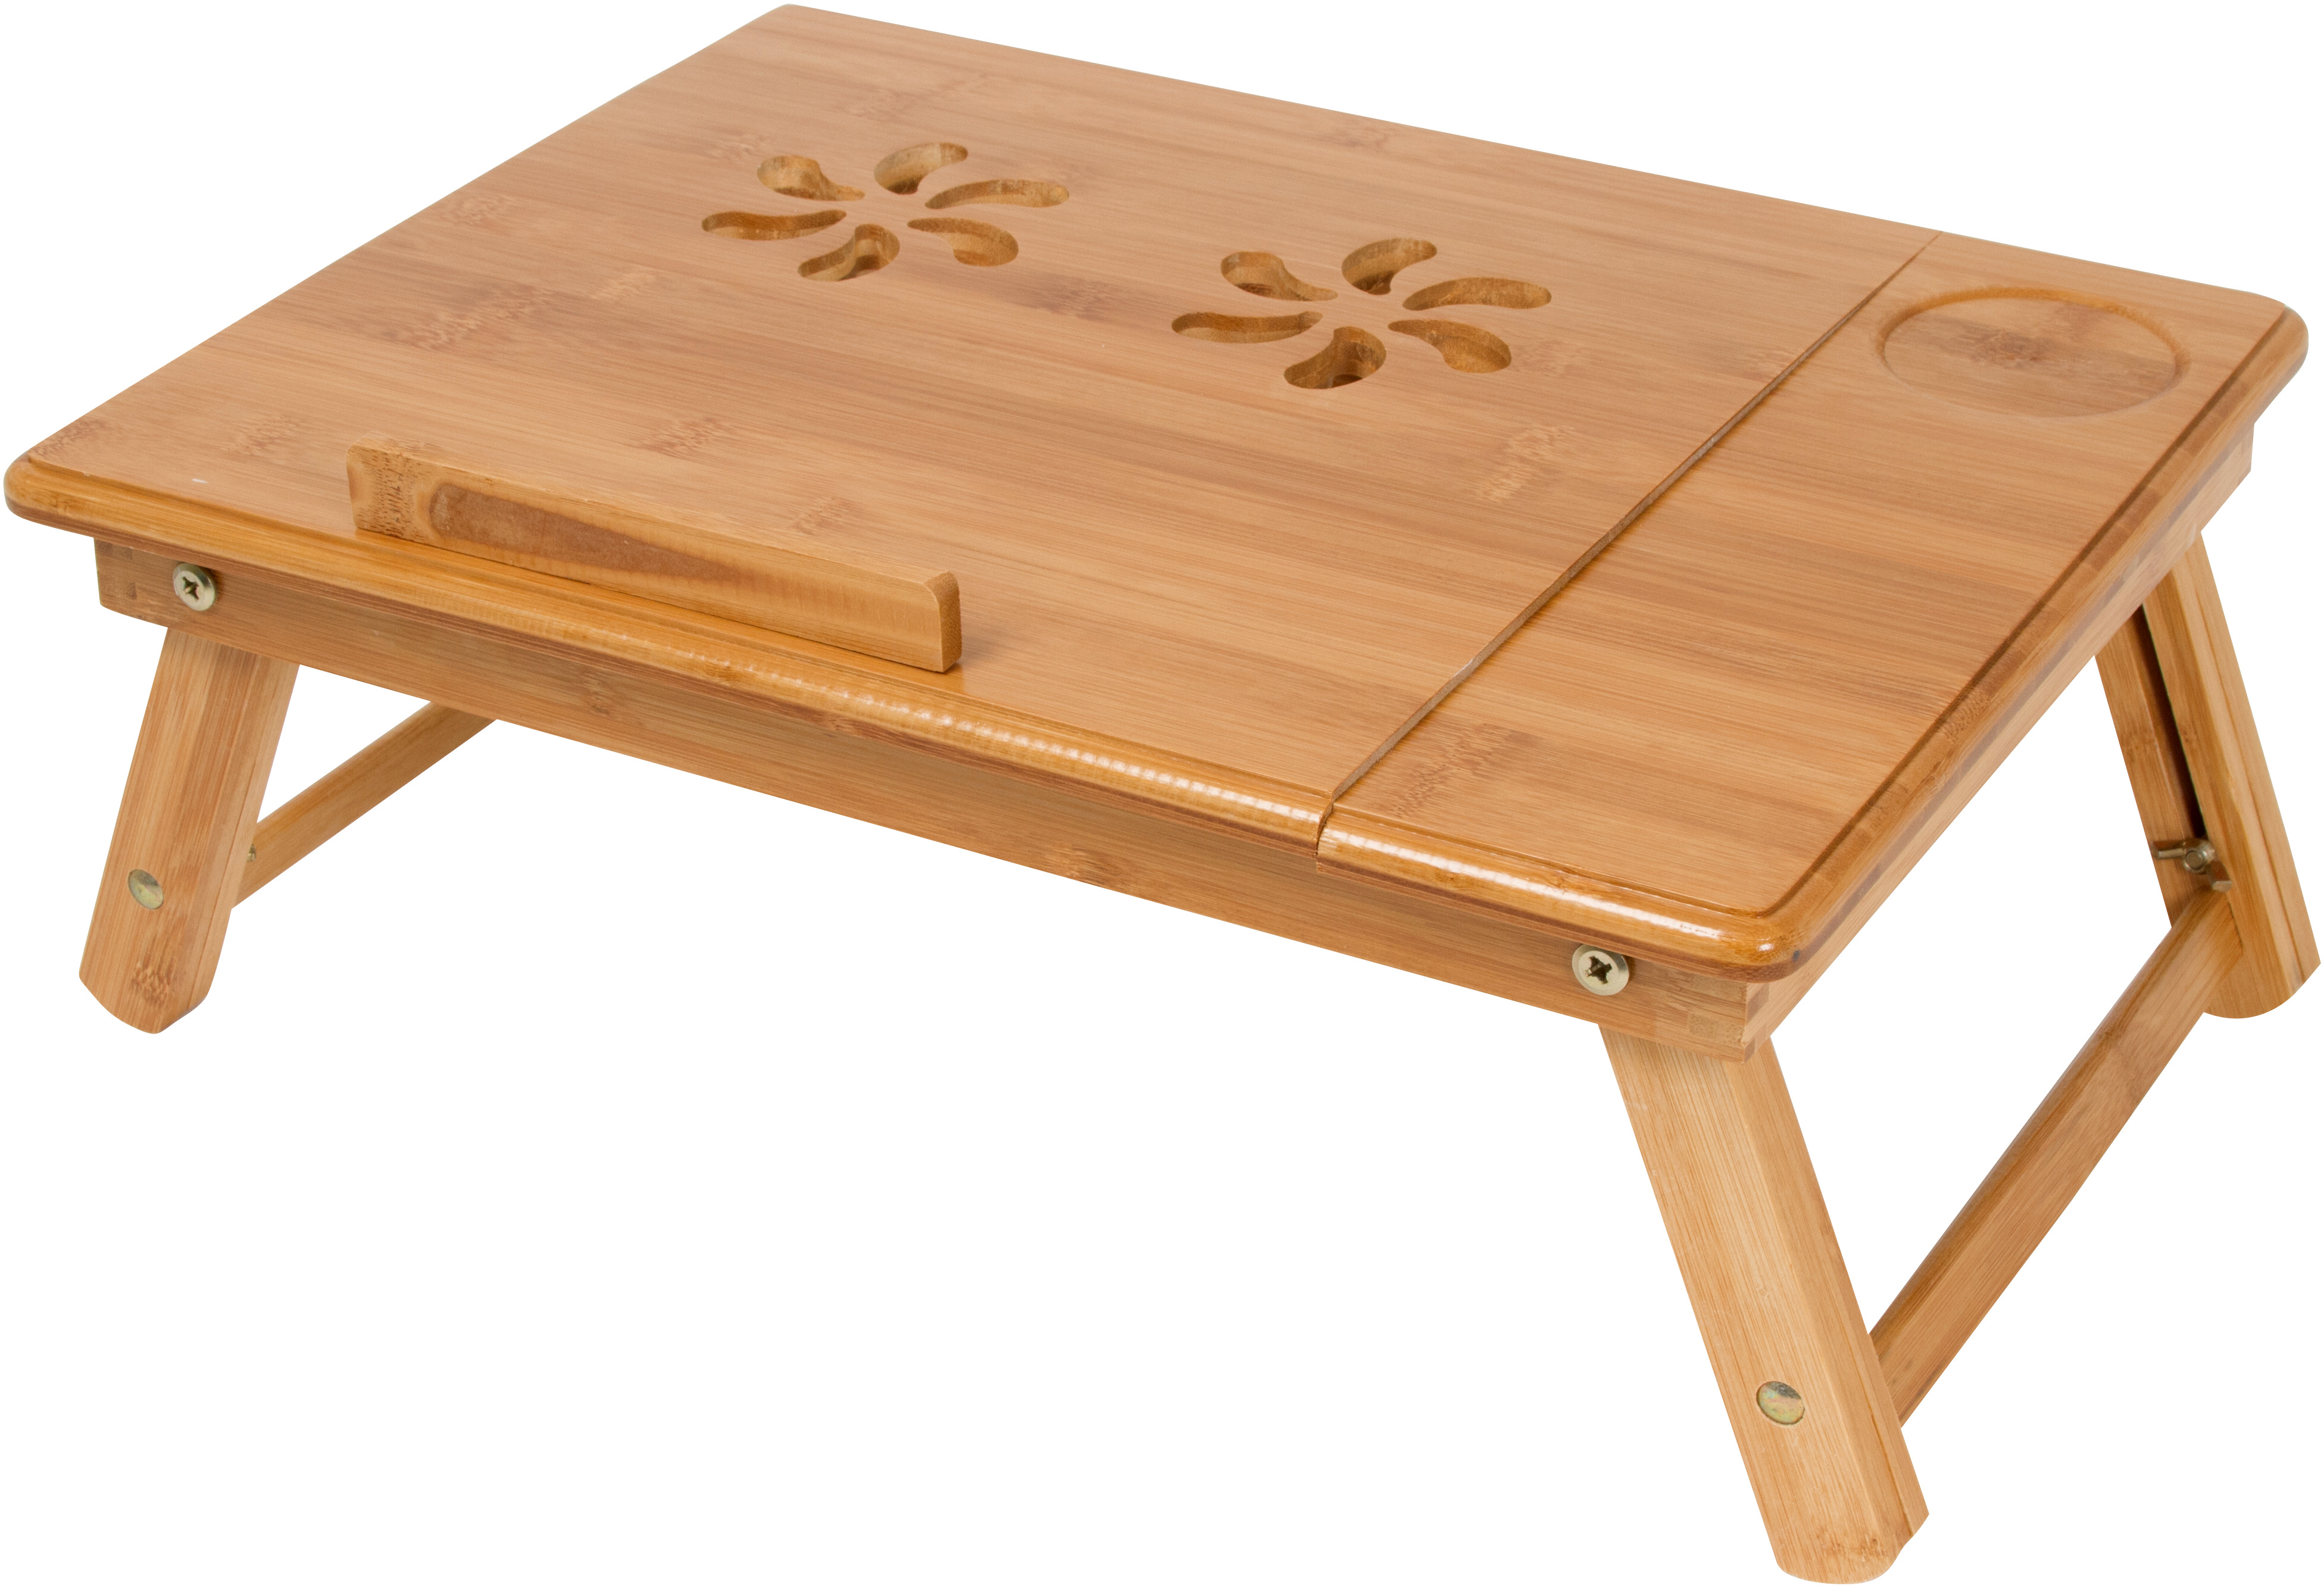 Lightweight and Portable Folding Bamboo Bed Tray By Trademark Innovations by Trademark Innovations